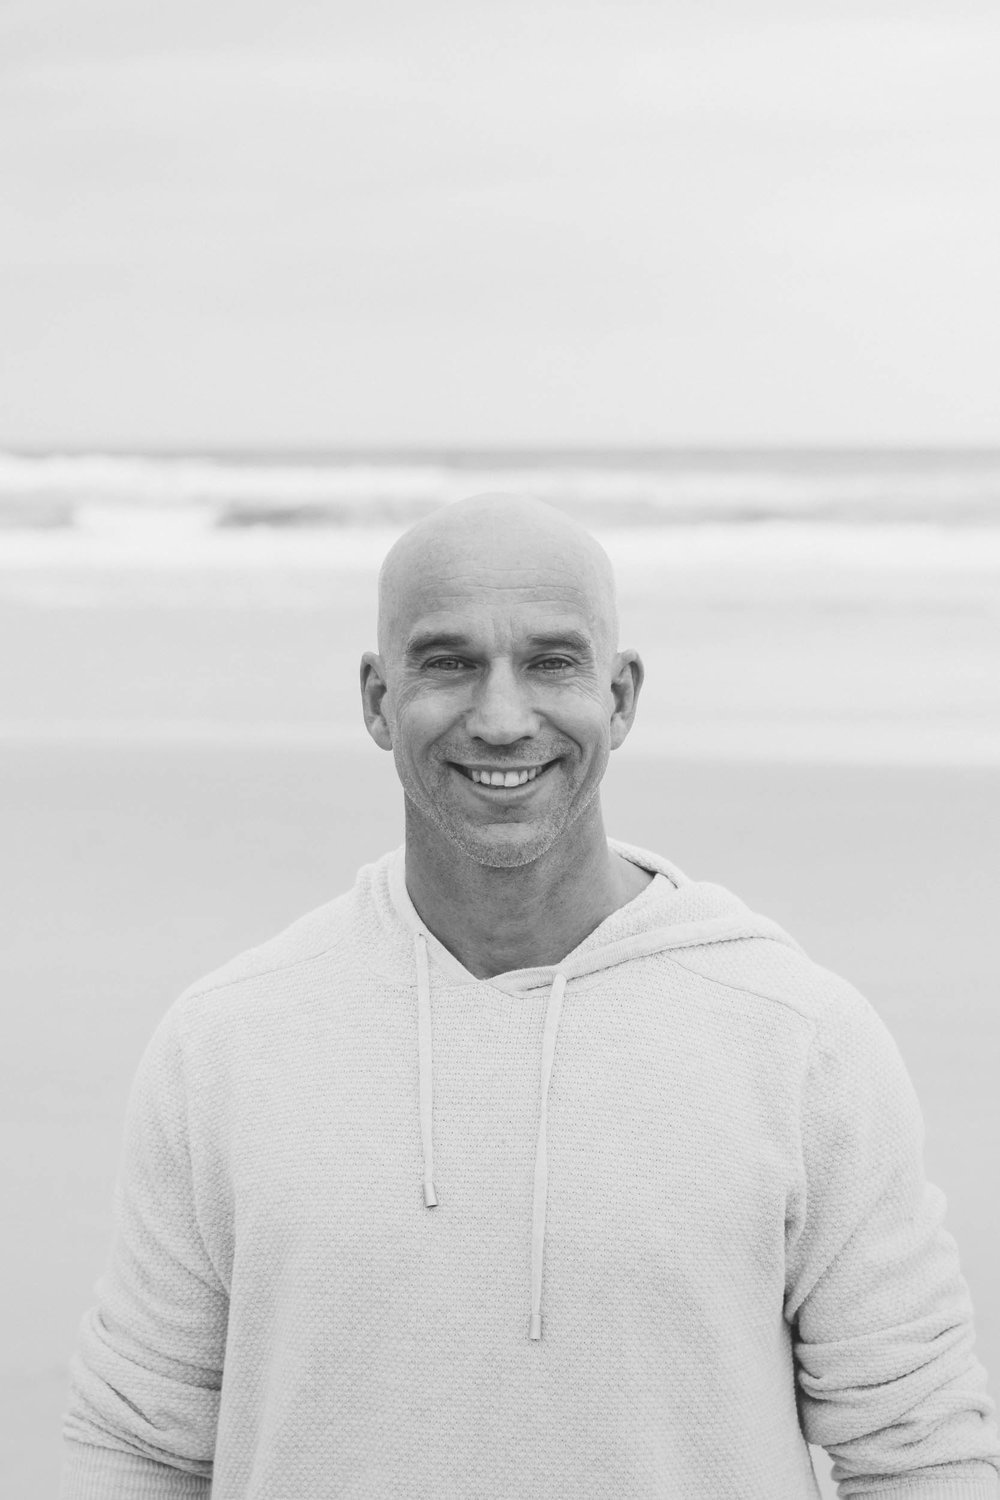 Owner and founder of Powerstart Jason Olderoy